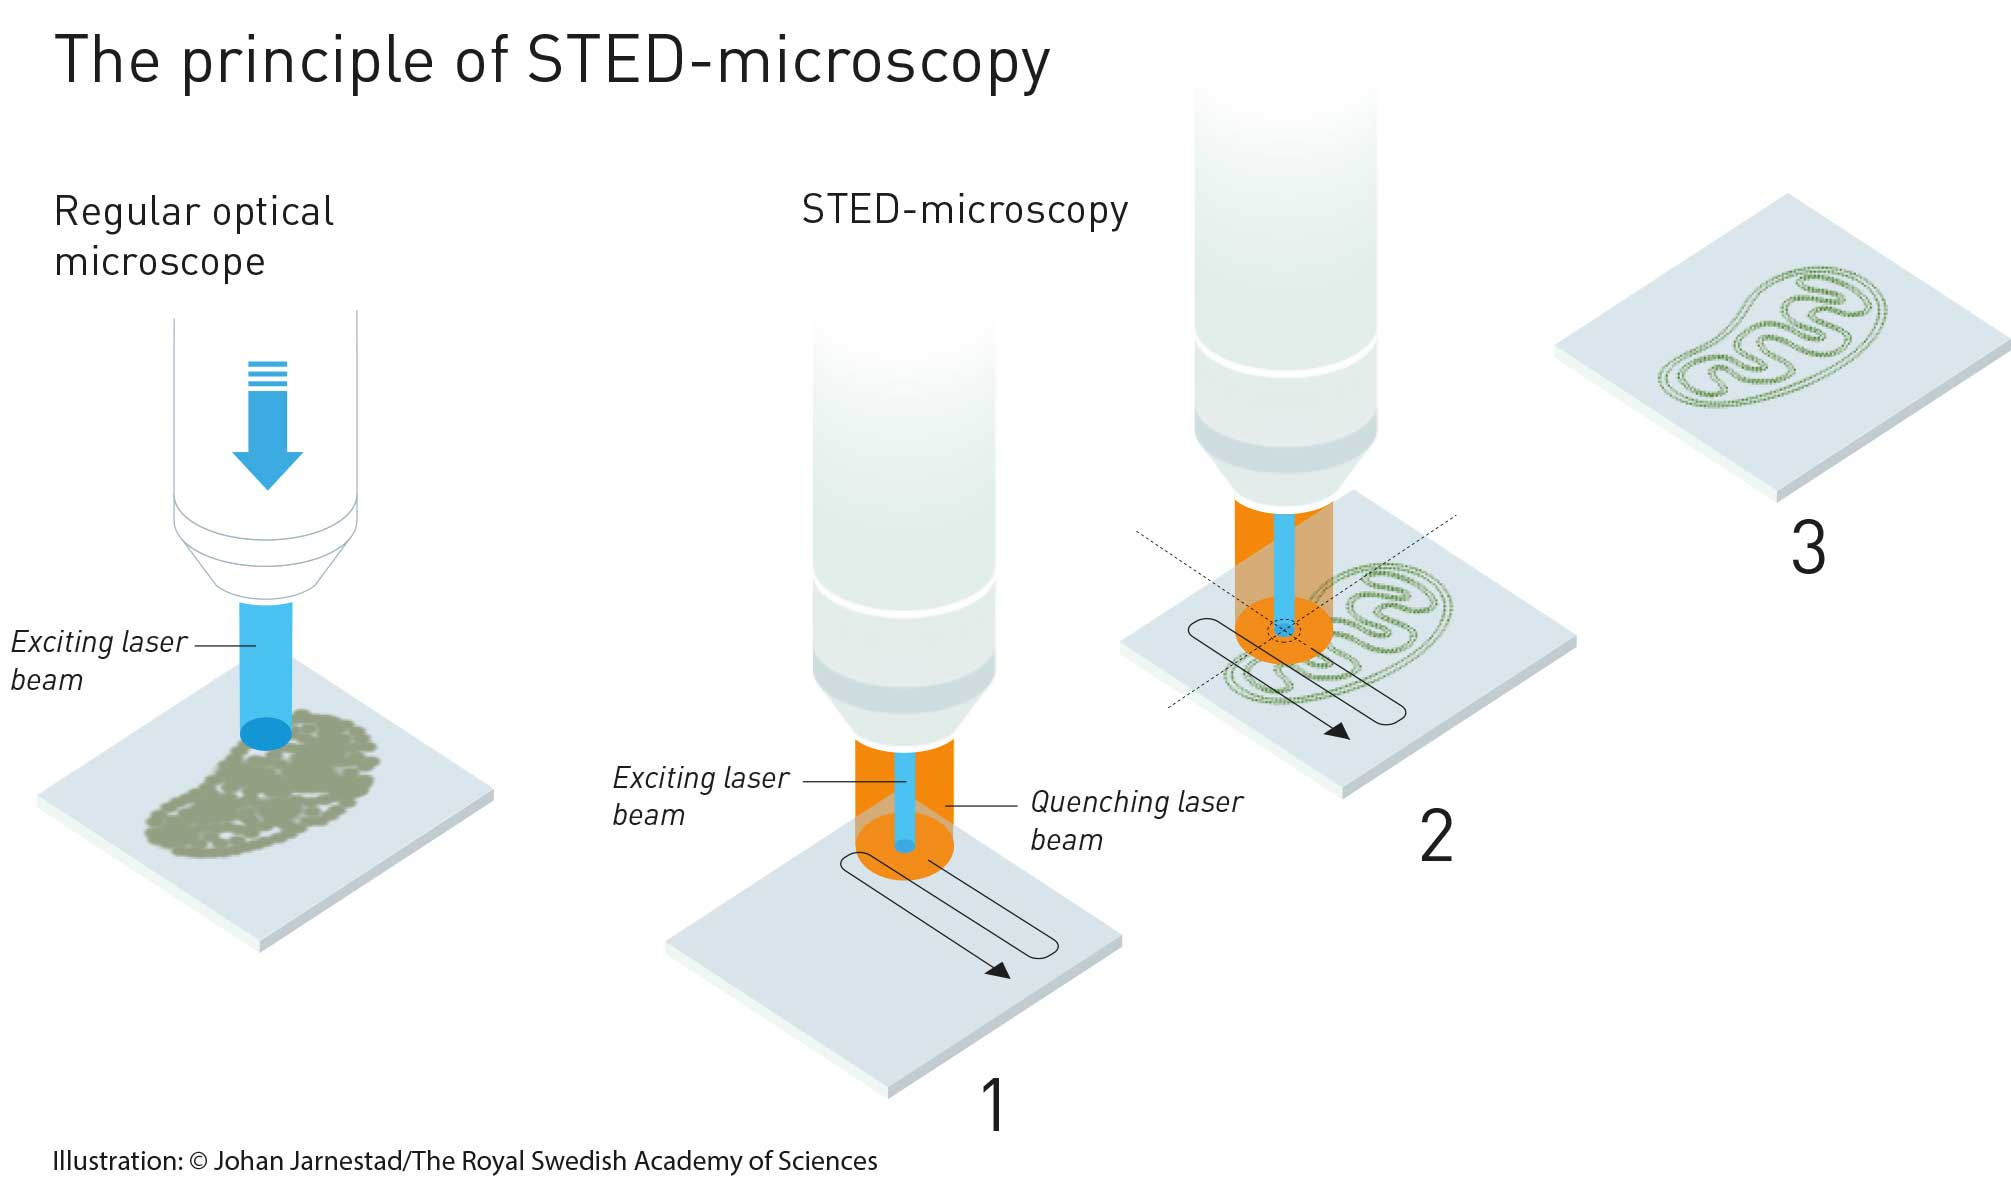 The principle of STED, based on laser scanning microscopy and the principle of extinction by way of stimulated emission.